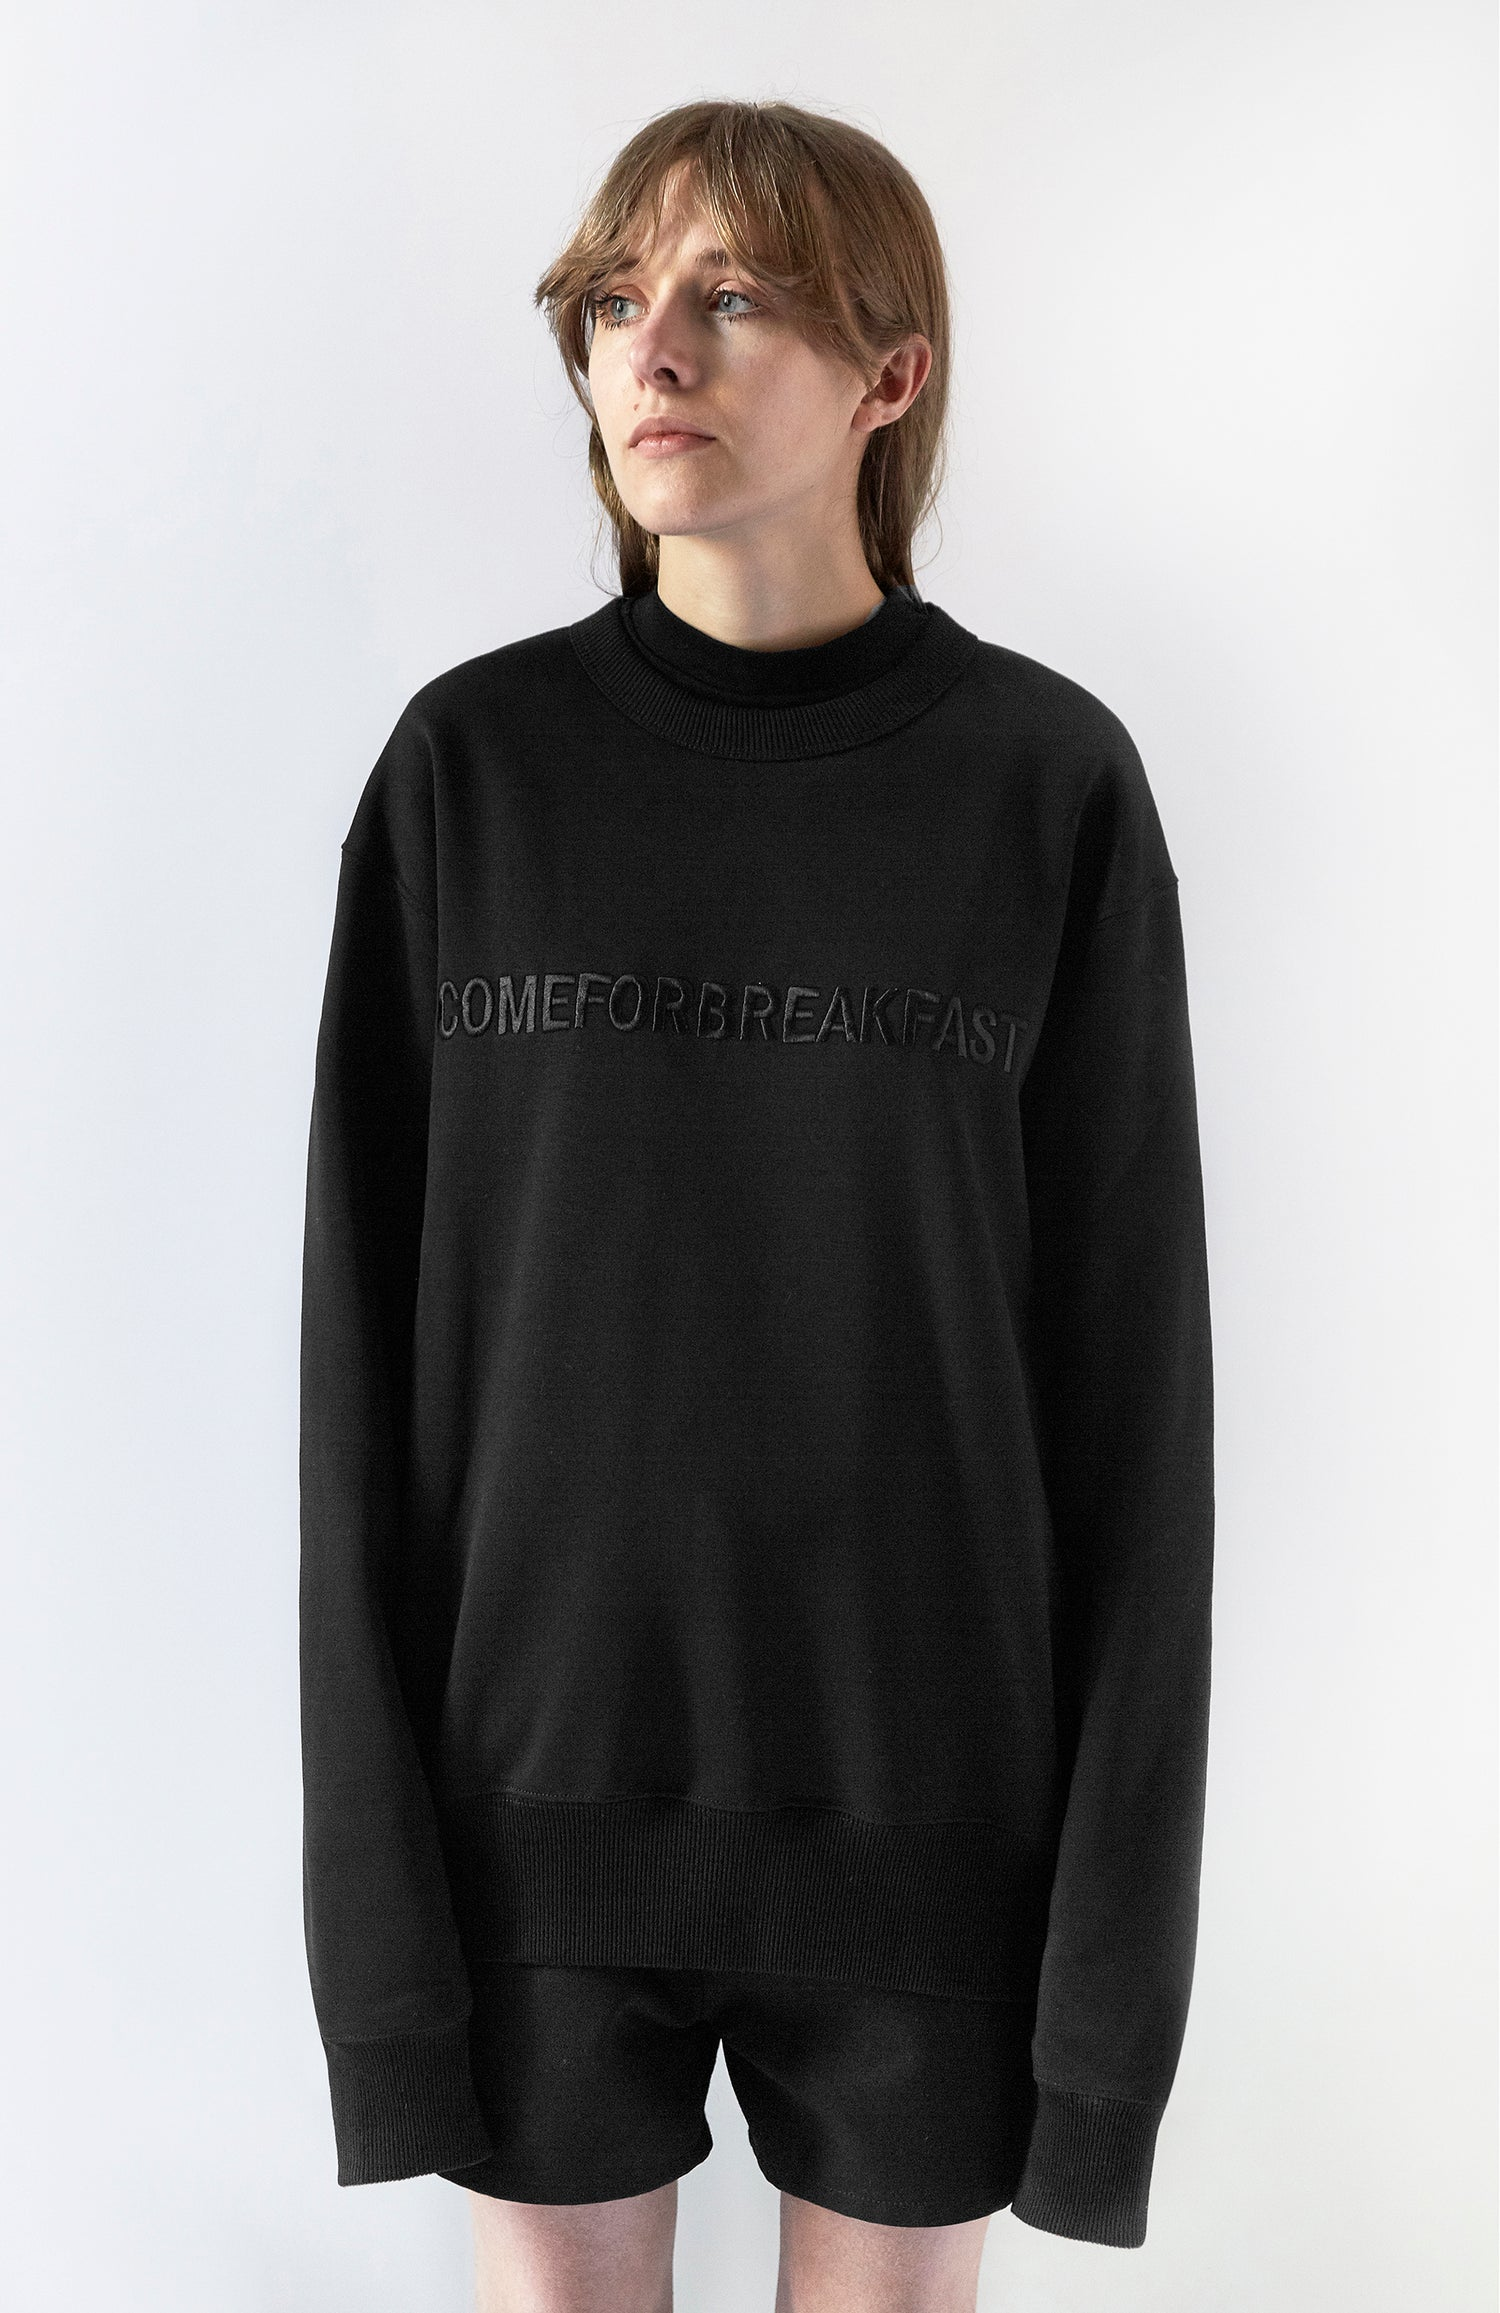 Image of SWEATSHIRT WITH BLACK EMBROIDERED LINEAR COMEFORBREAKFAST LOGO - WOMAN